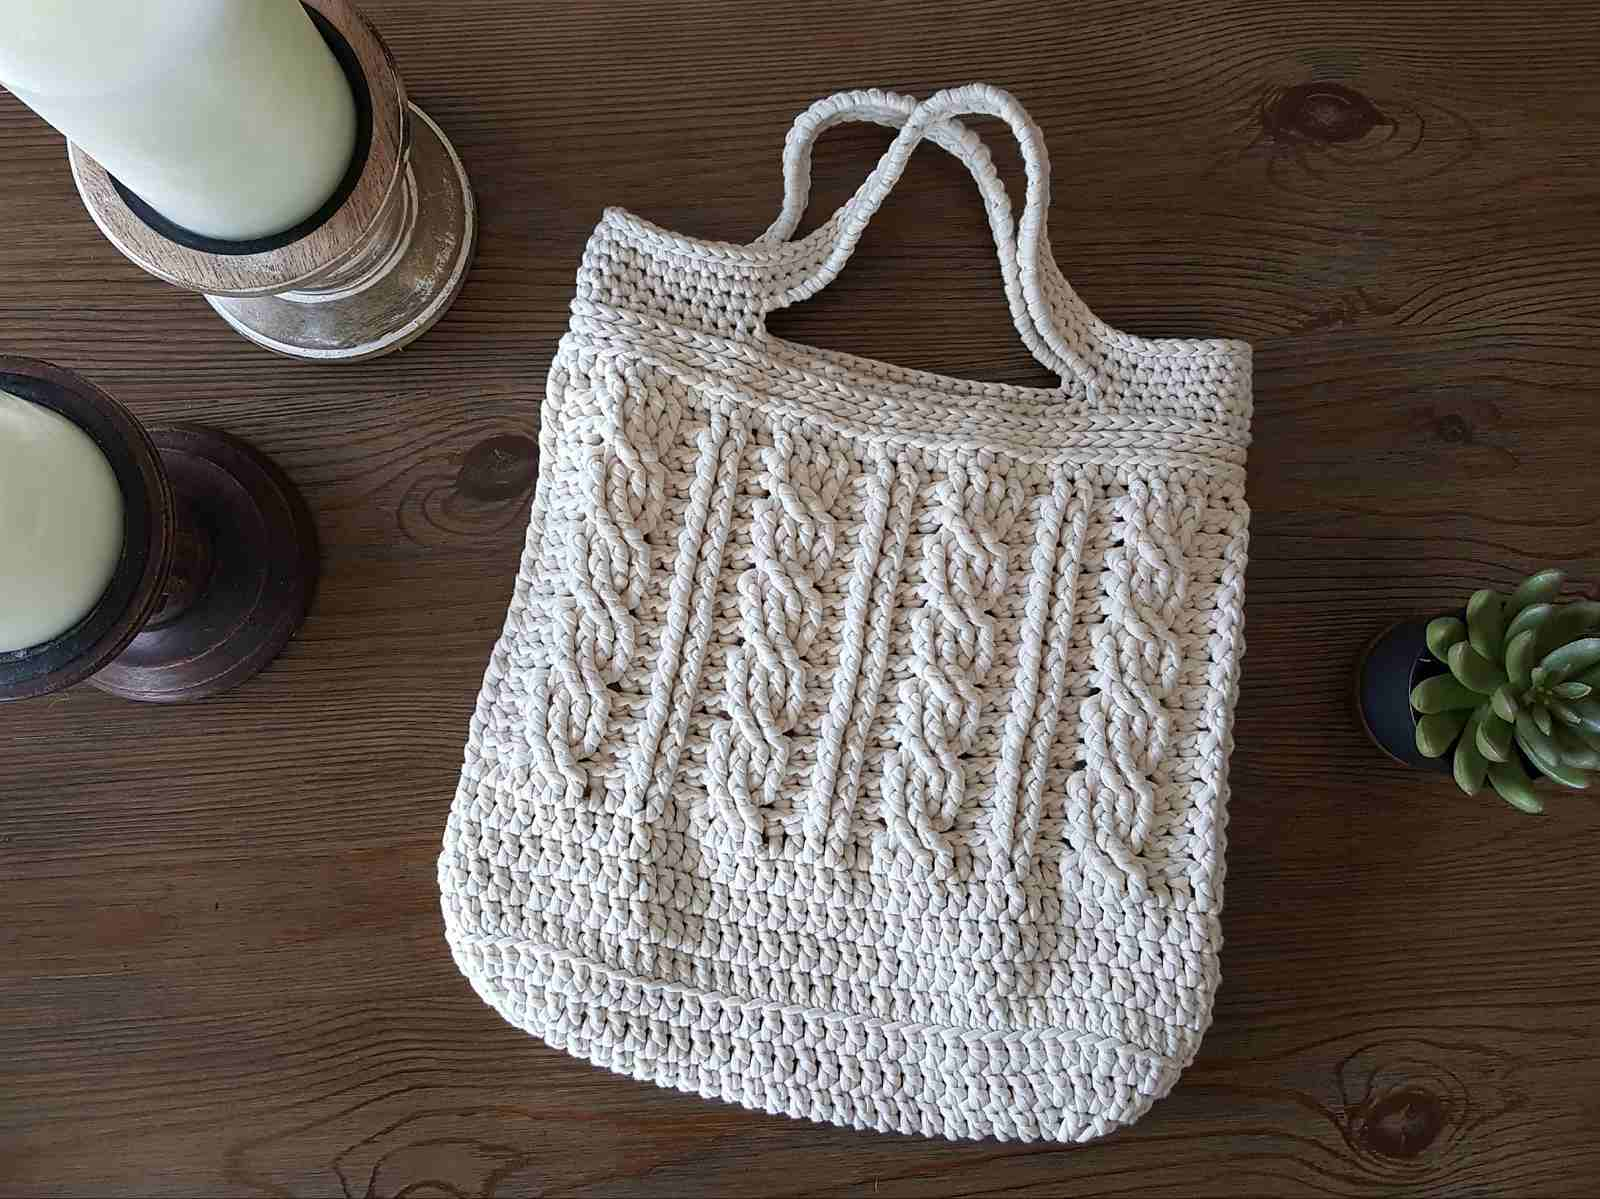 8 Creative Crochet Bag Patterns